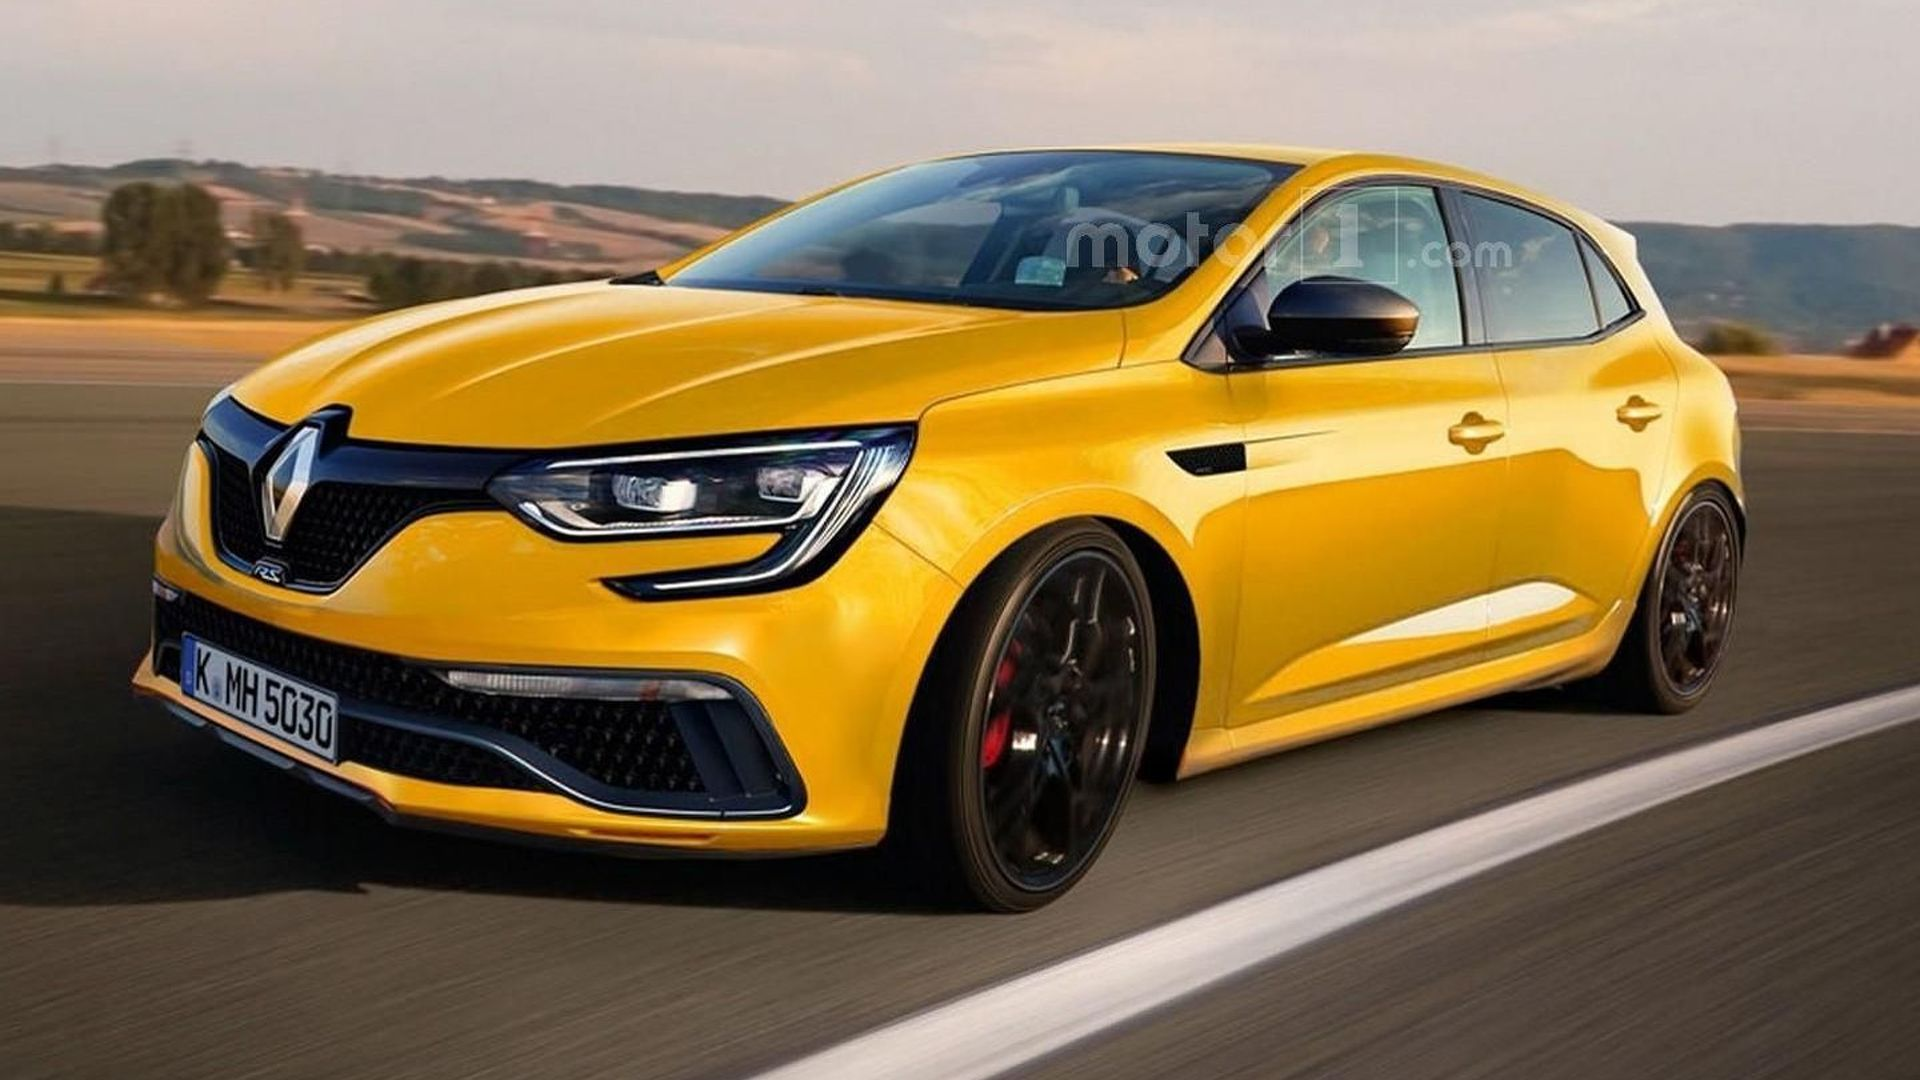 Megane Rs 2017 >> 2017 Renault Megane Rs Render Sees Into The Future